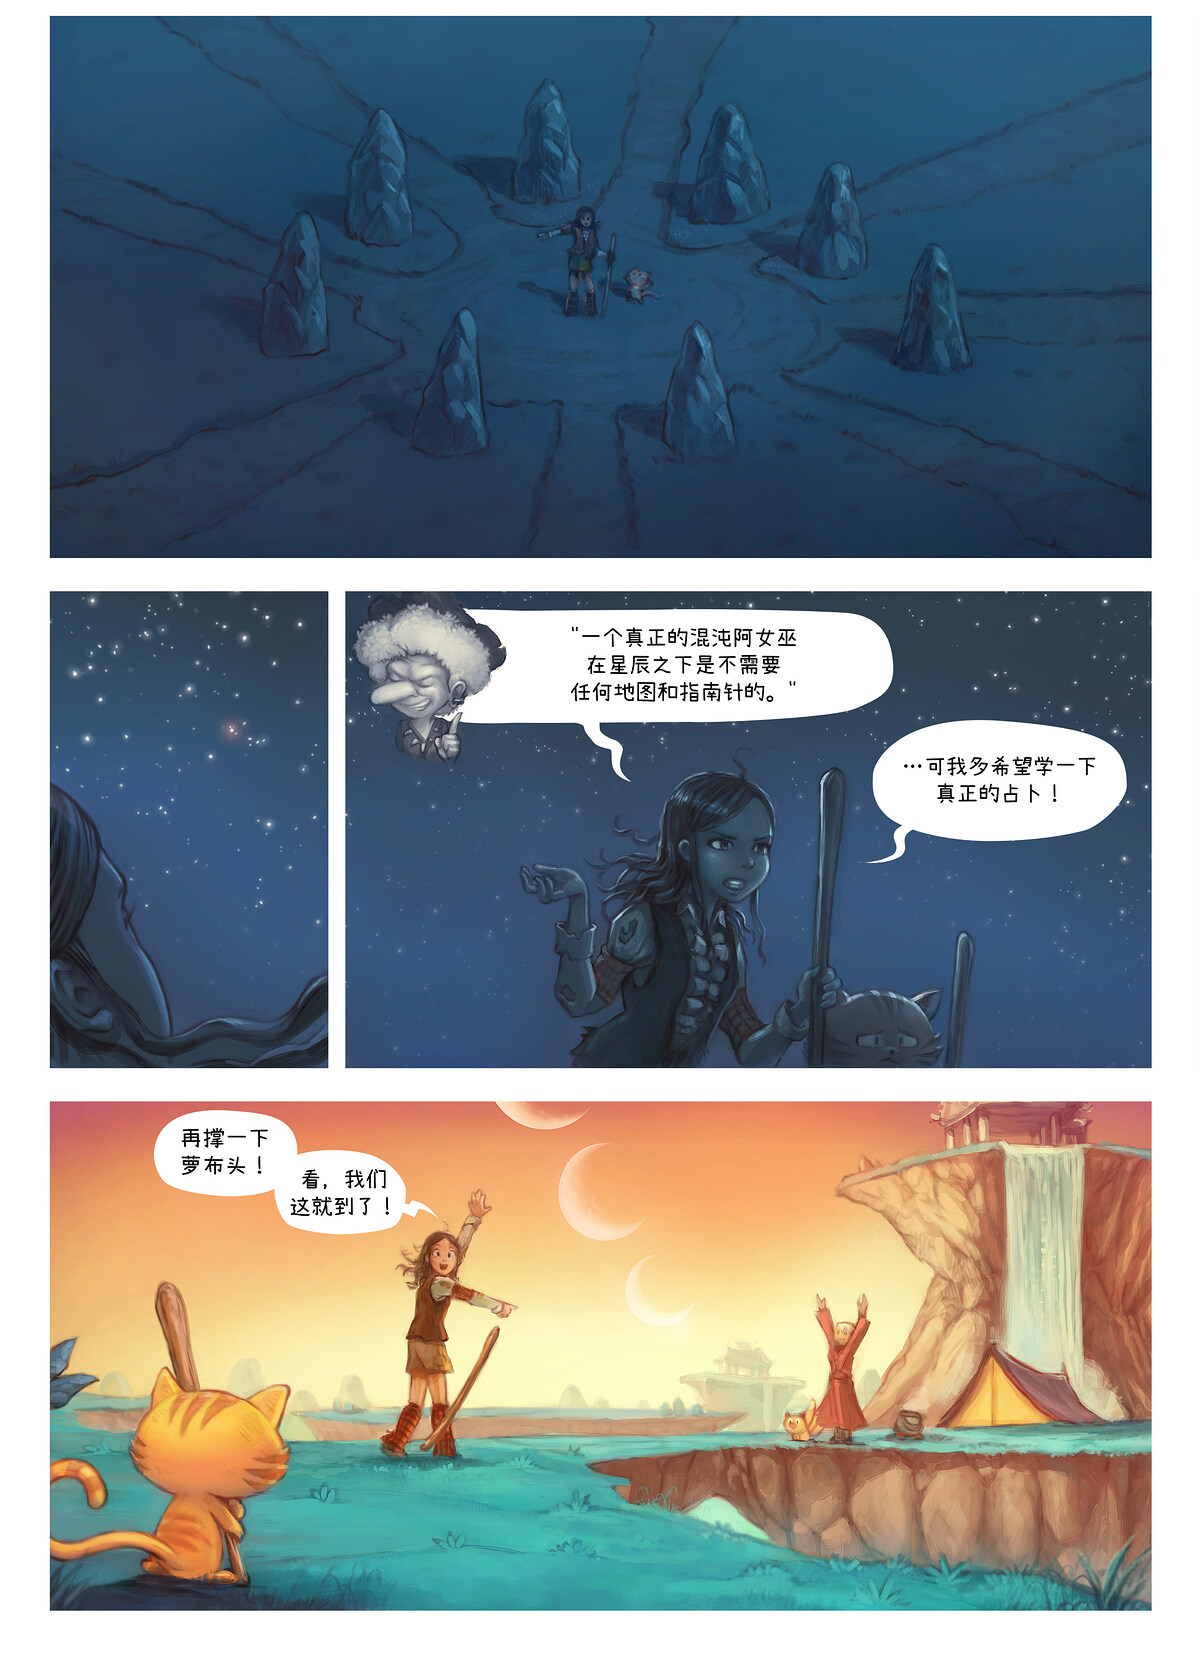 A webcomic page of Pepper&Carrot, 漫画全集 17 [cn], 页面 6